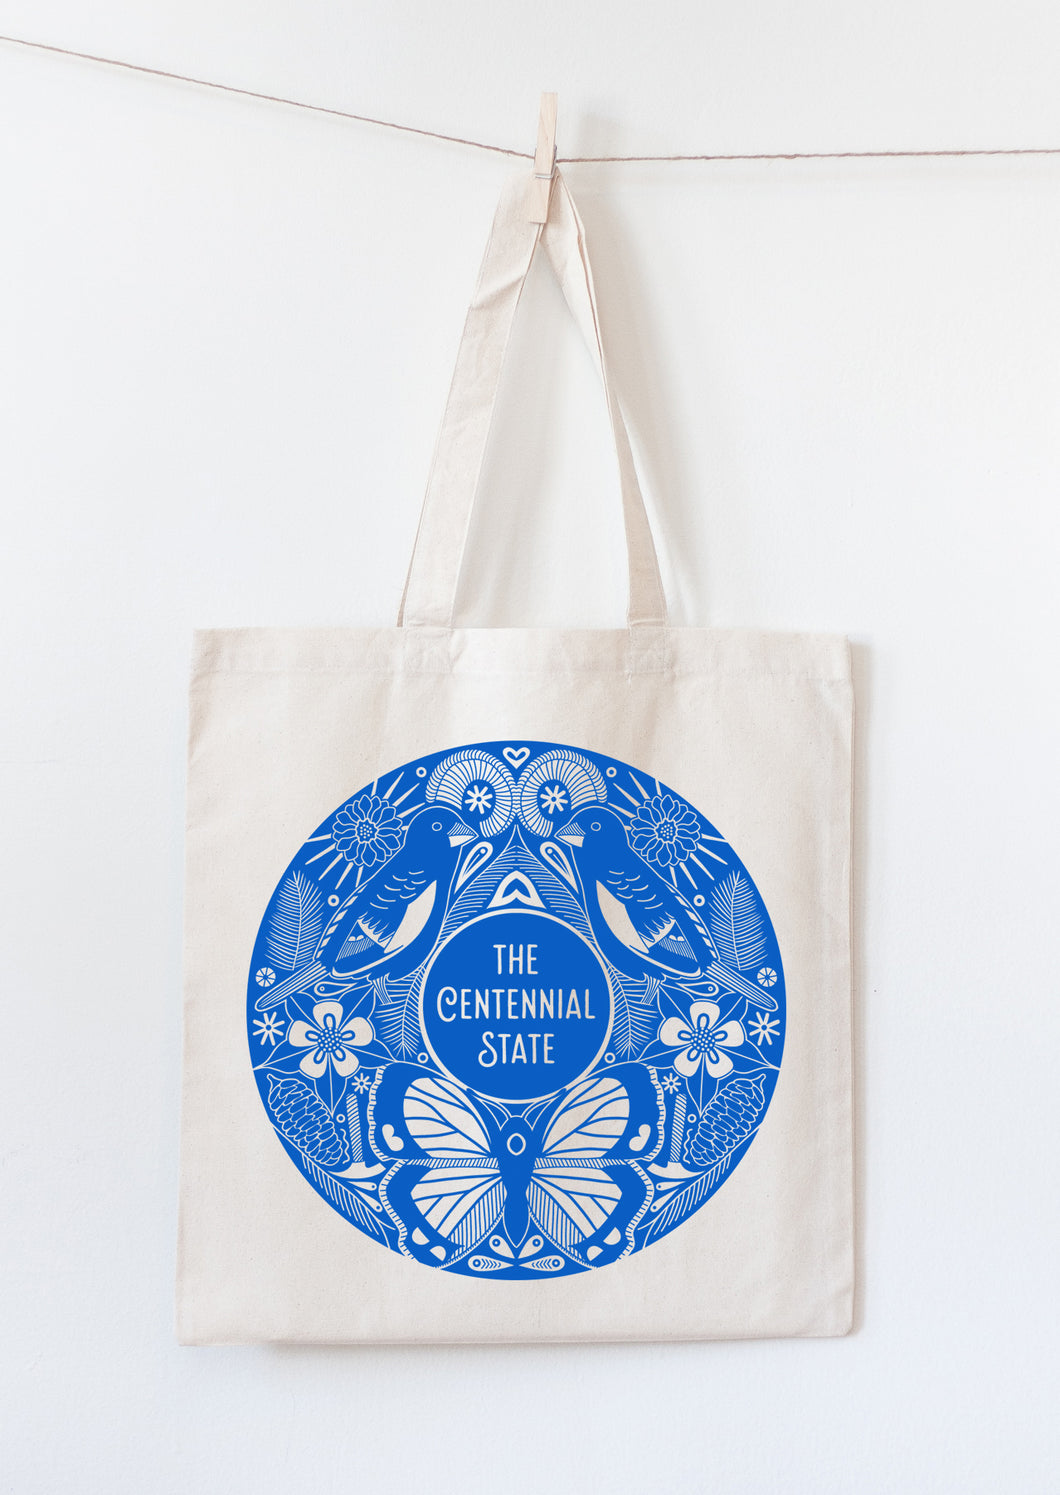 The Centennial State tote bag with Colorado symbols